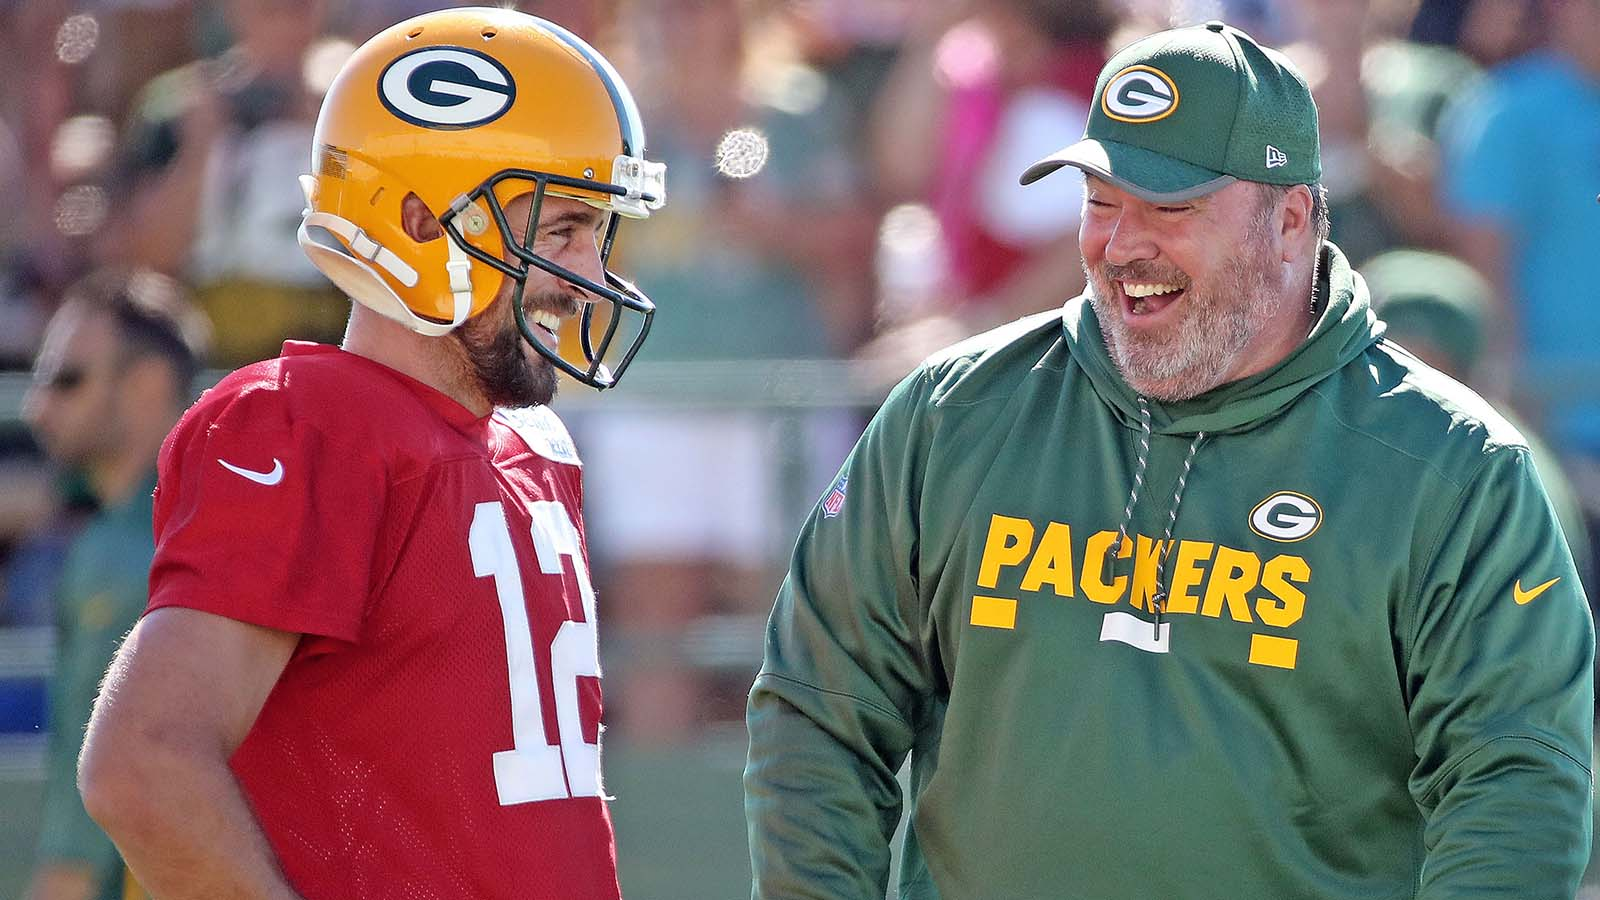 June 29, 2017; Ashwabenon, WI, USA; Green Bay Packers quarterback Aaron Rodgers (12) talks with head coach Mike McCarthy during Green Bay Packers Training Camp at Ray Nitschke Field. Mandatory credit: Jim Matthews-USA TODAY NETWORK